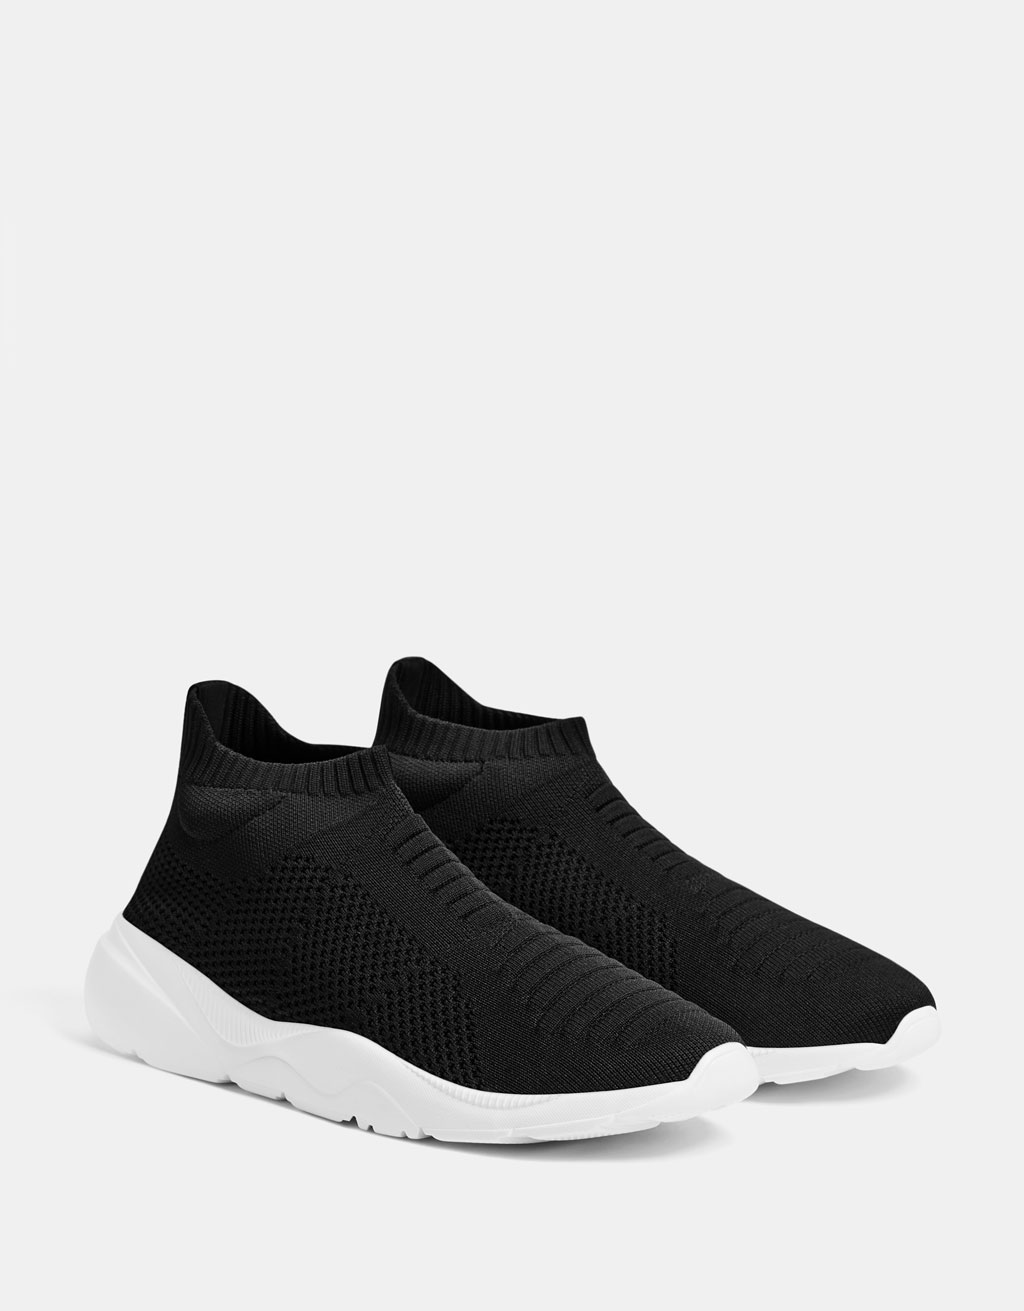 Men's sock-style high-top trainers